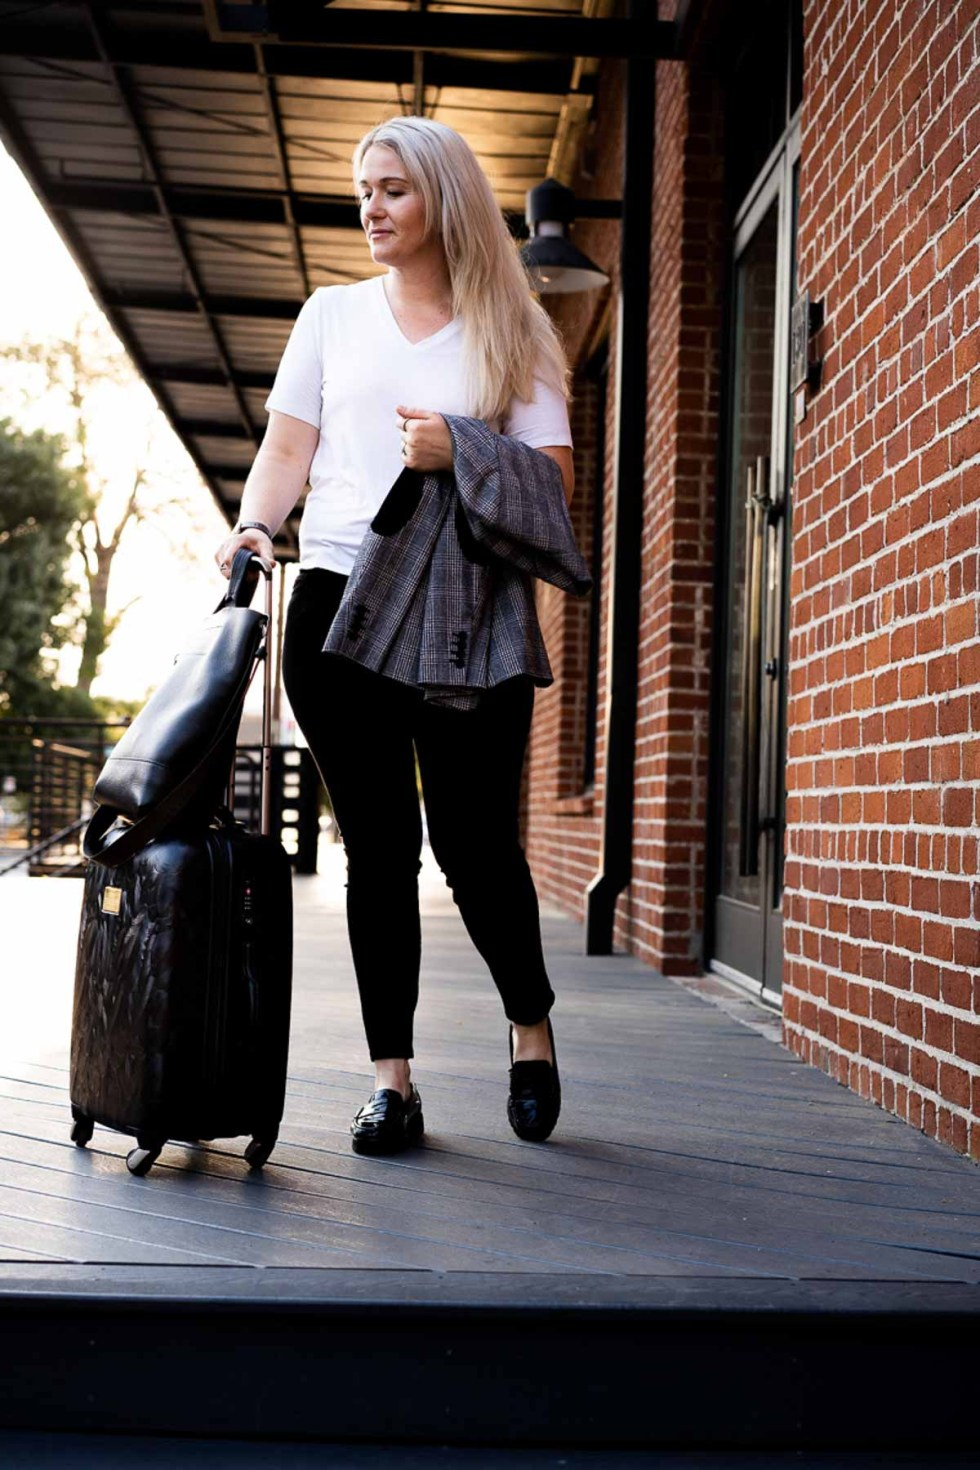 Fall Travel Outfits - White Tee + Jeans with Spinner Suitcase